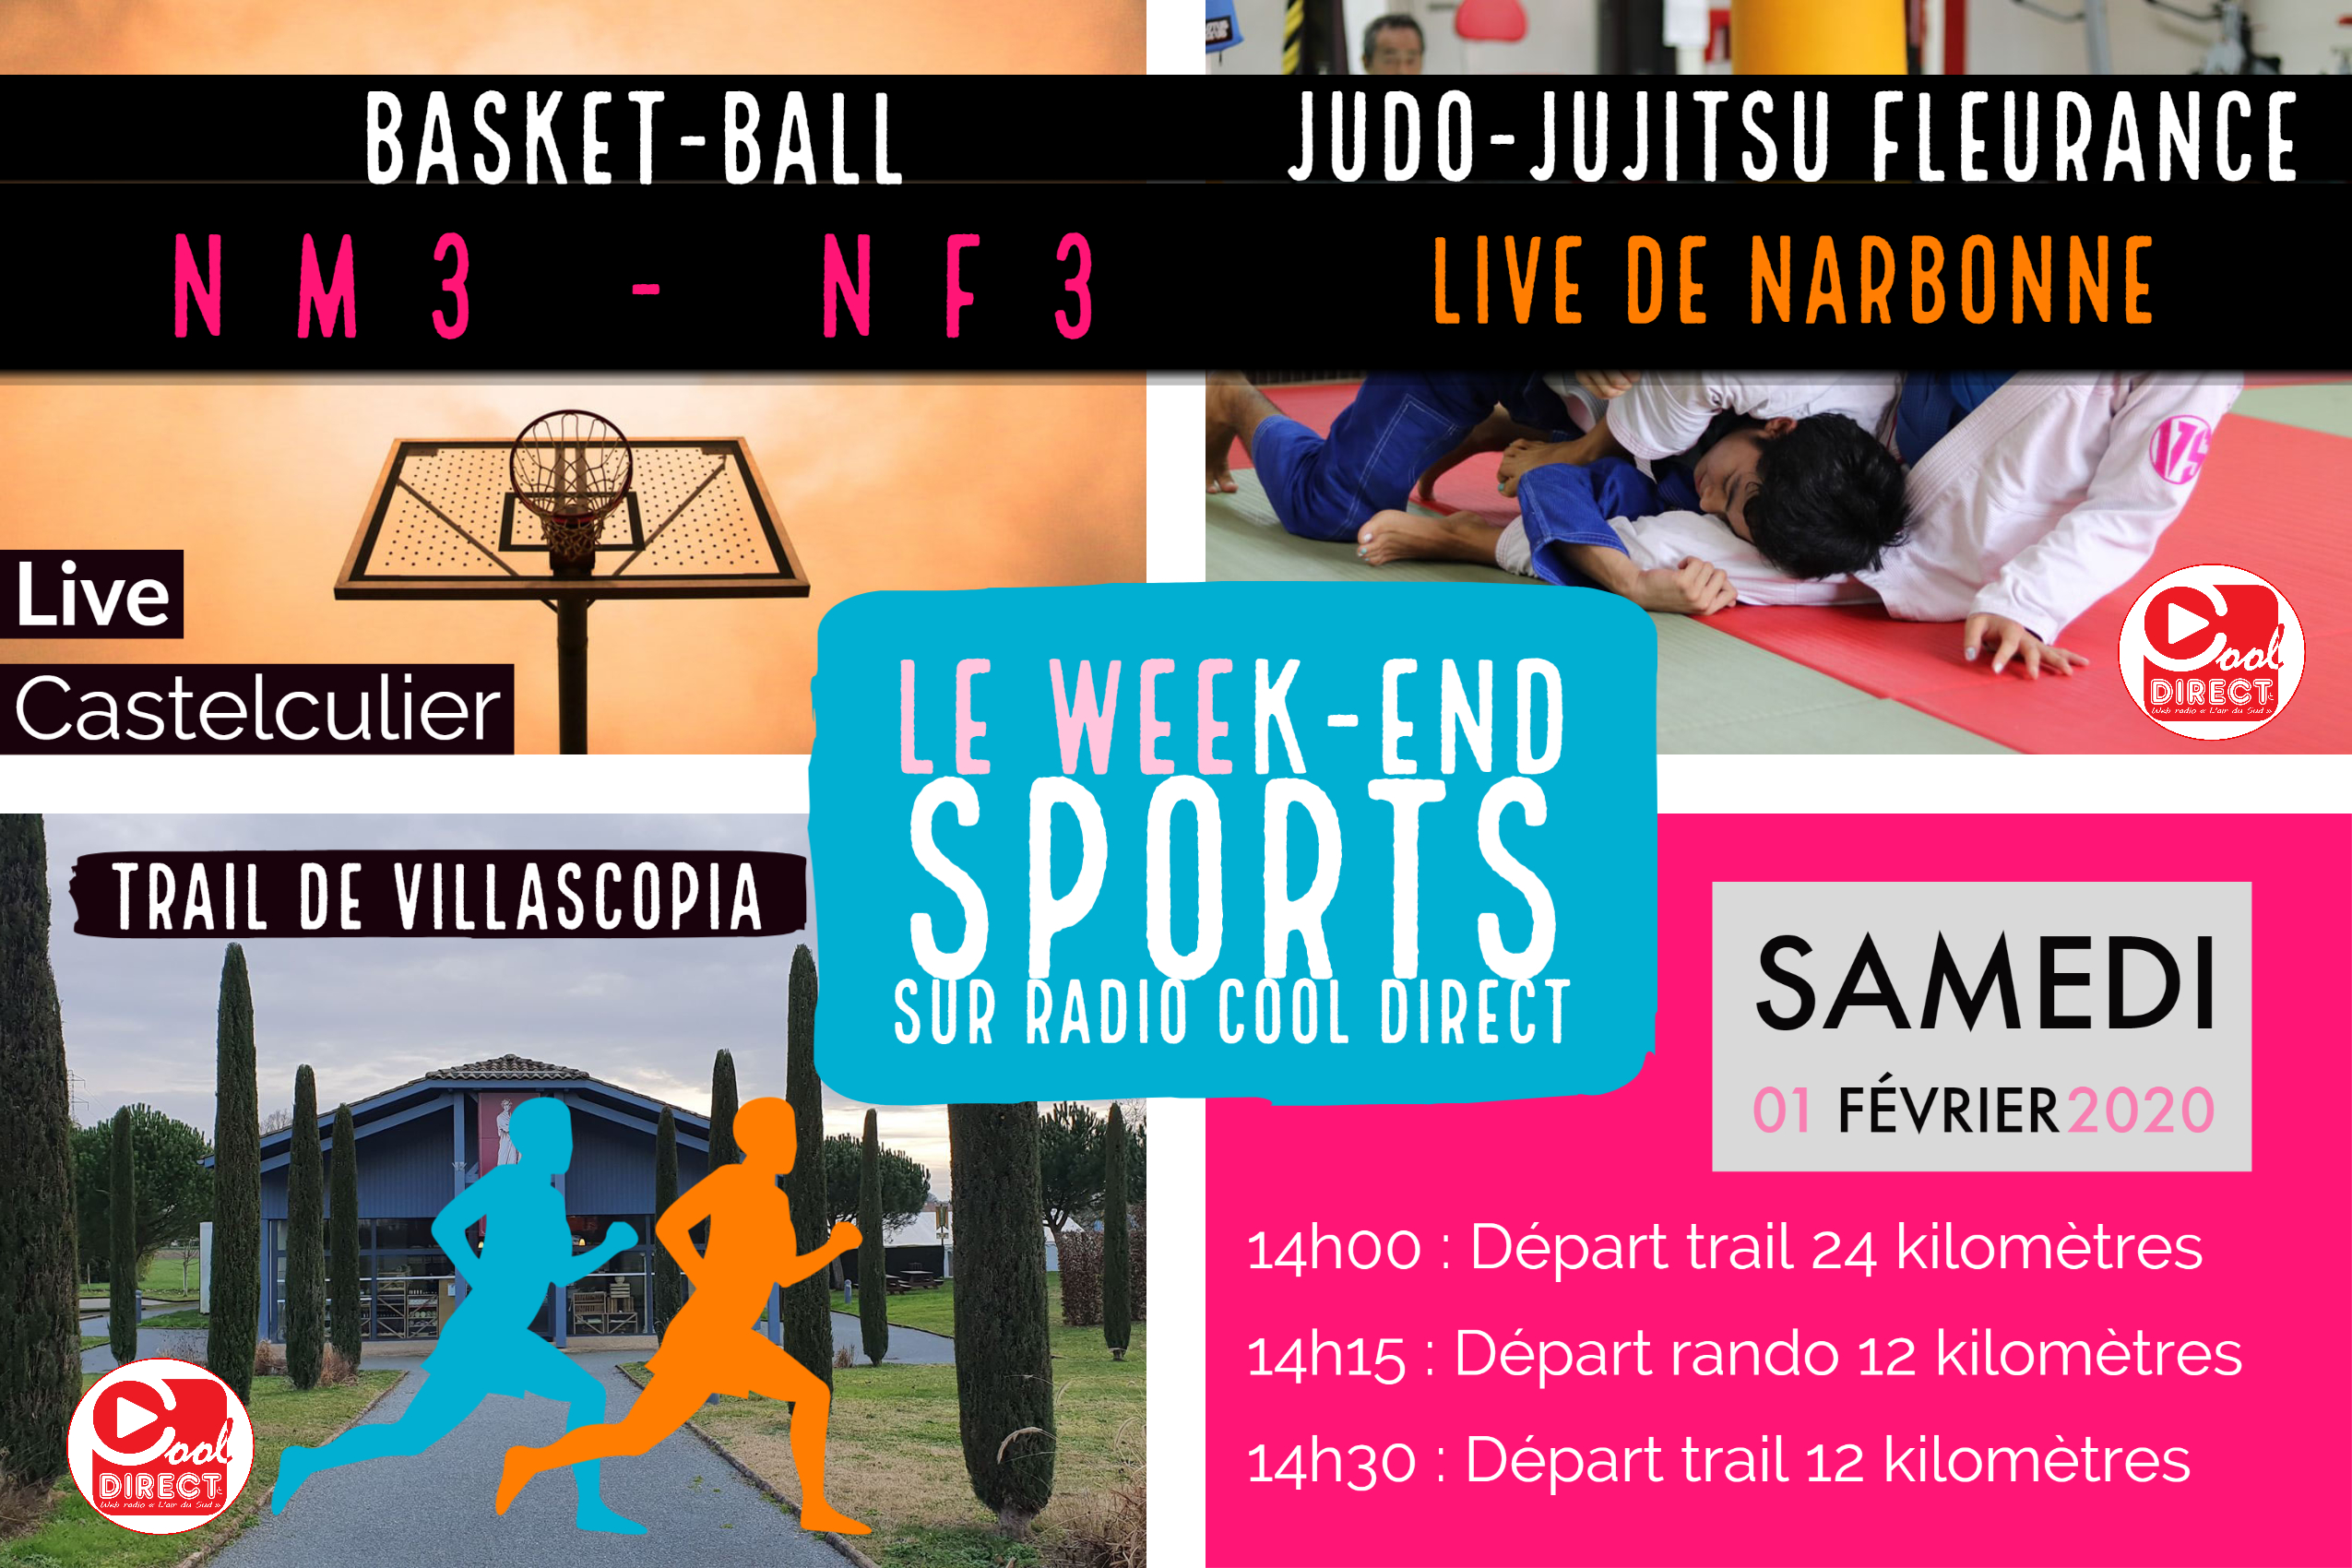 weekend sports.jpg (2.30 MB)